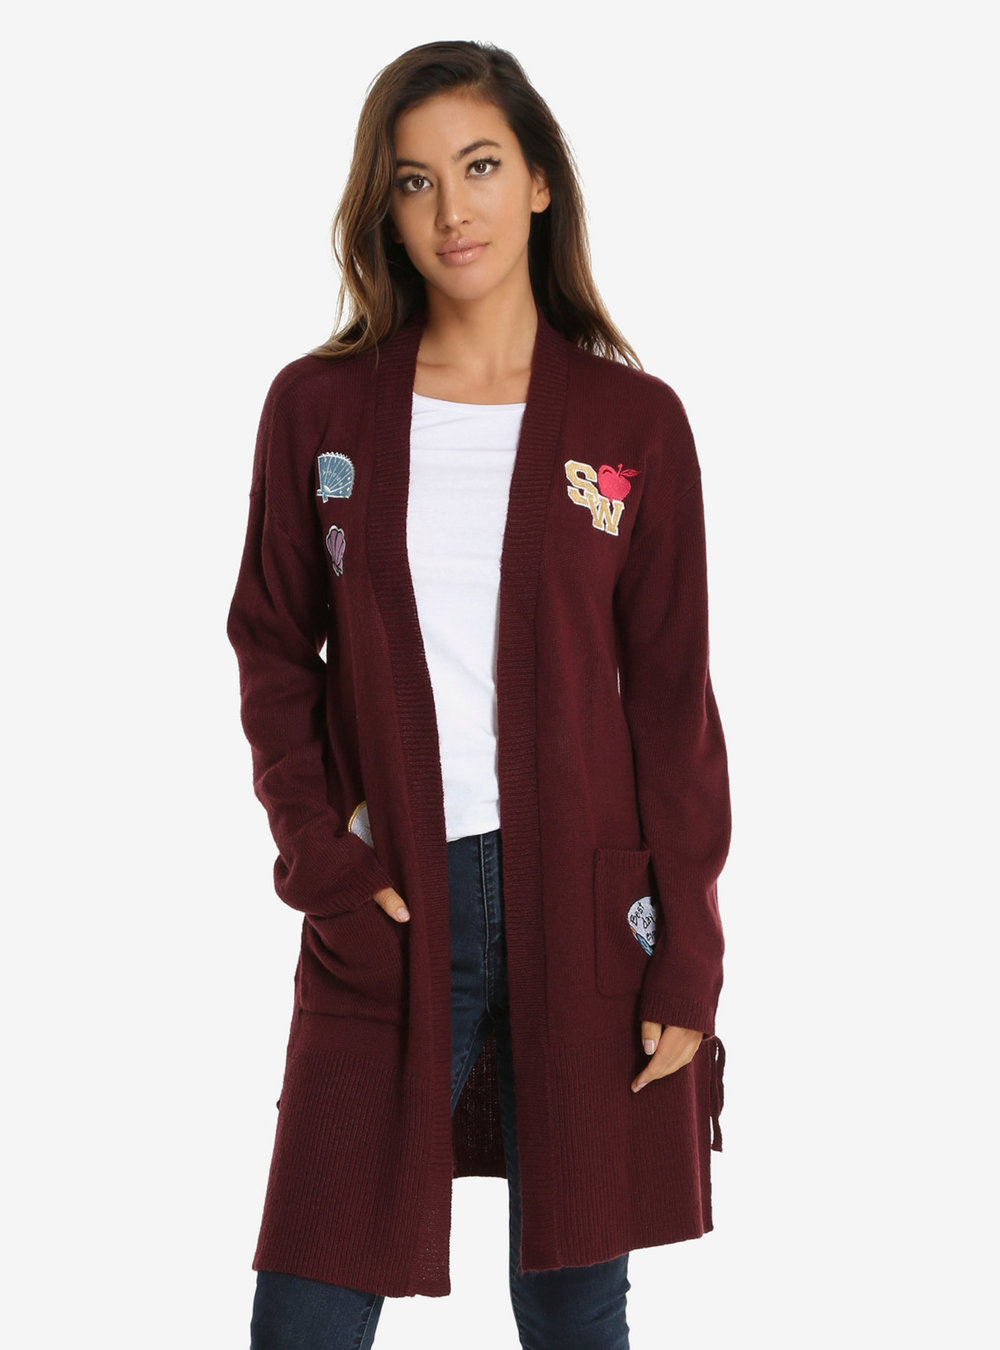 disney princess long line patches cardigan.jpg